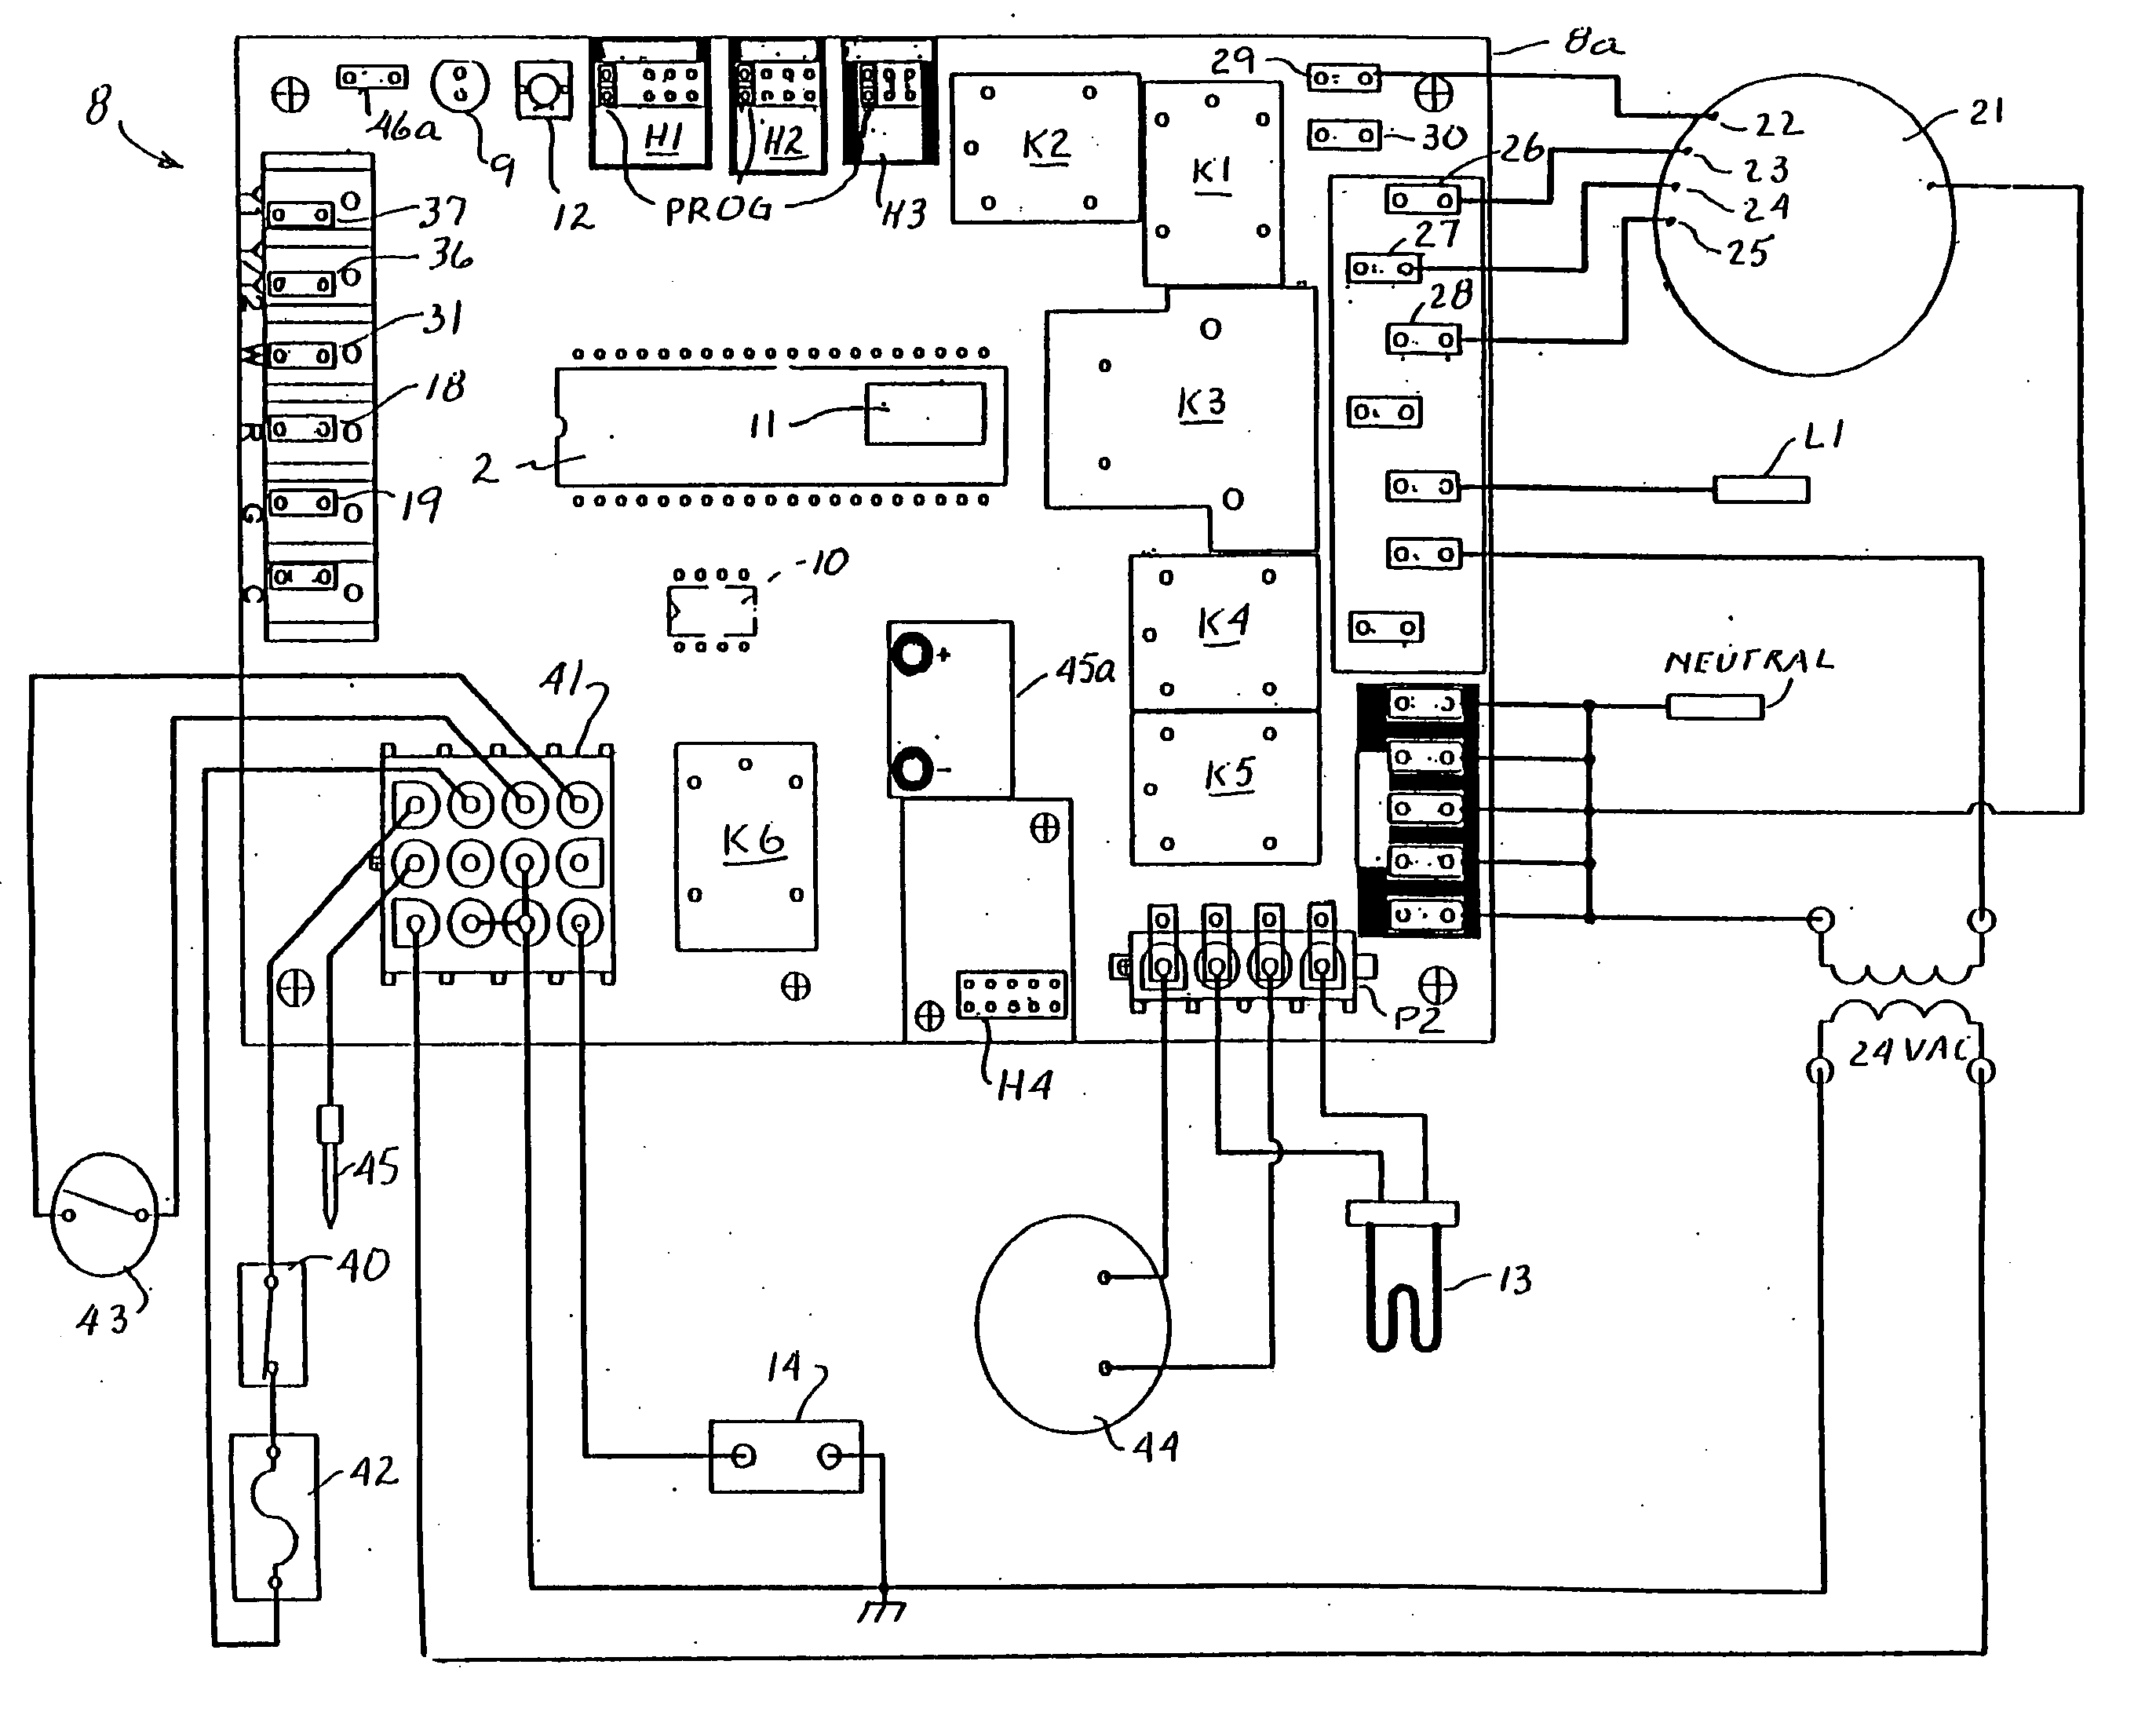 unique old gas furnace wiring diagram diagram diagramsample diagramtemplate wiringdiagram diagramchart [ 2747 x 2209 Pixel ]